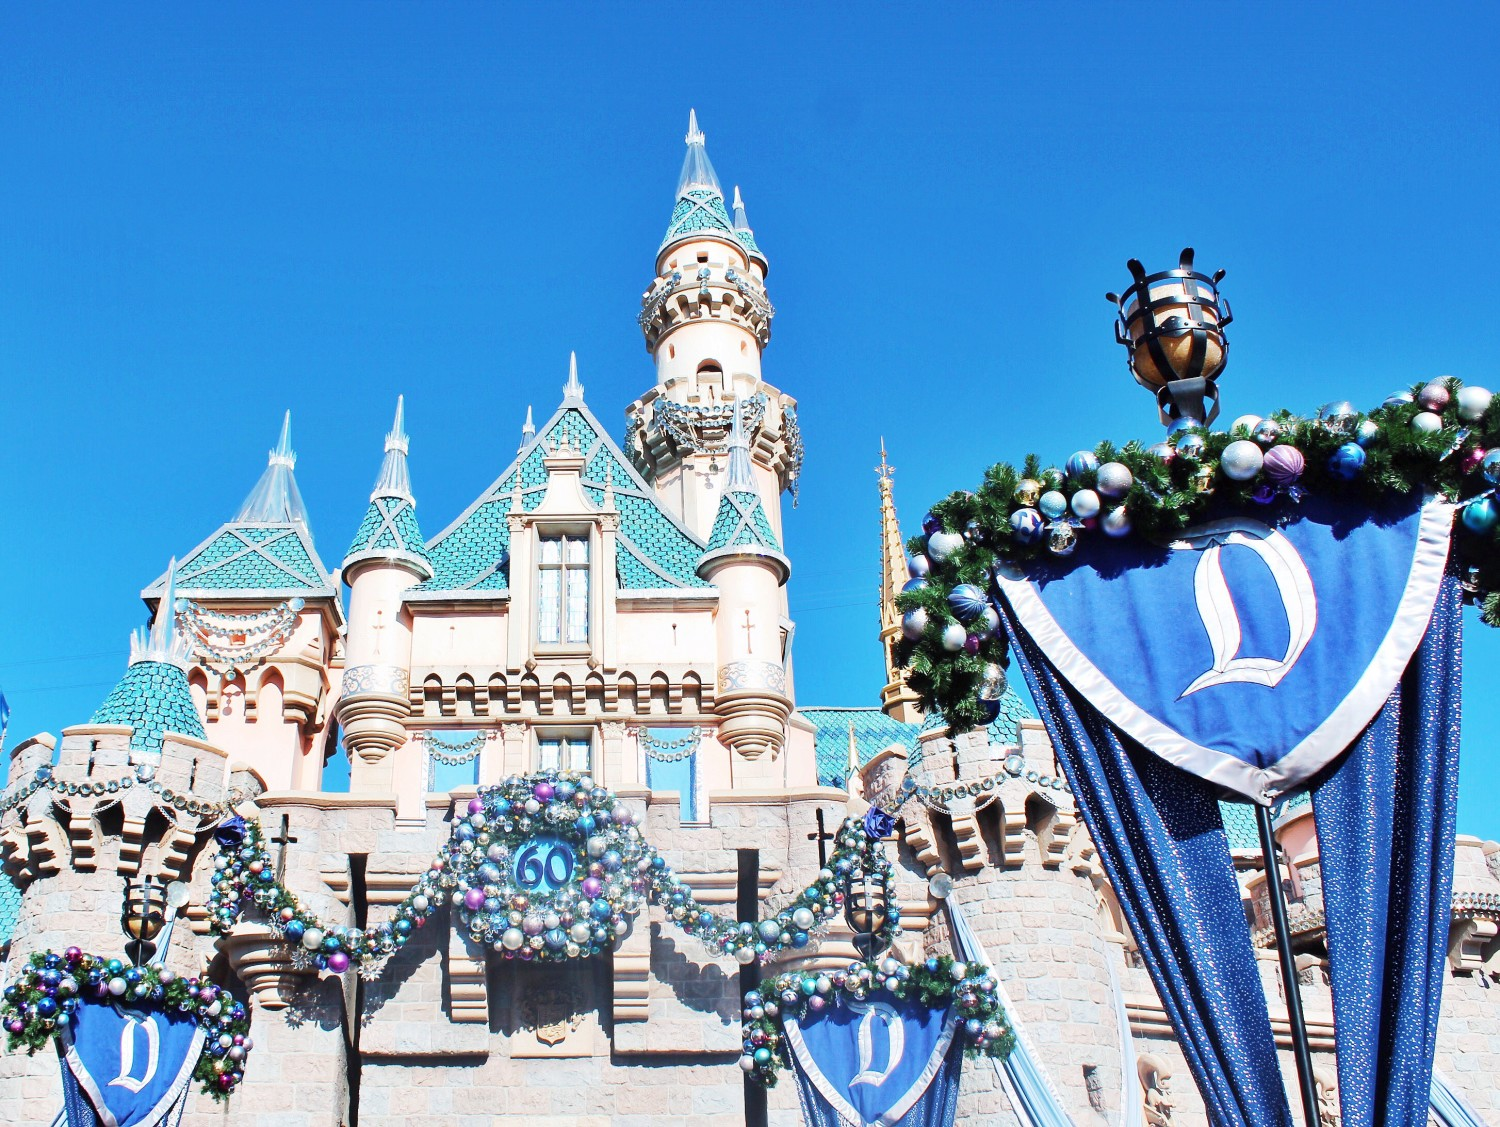 Disneyland During Christmastime